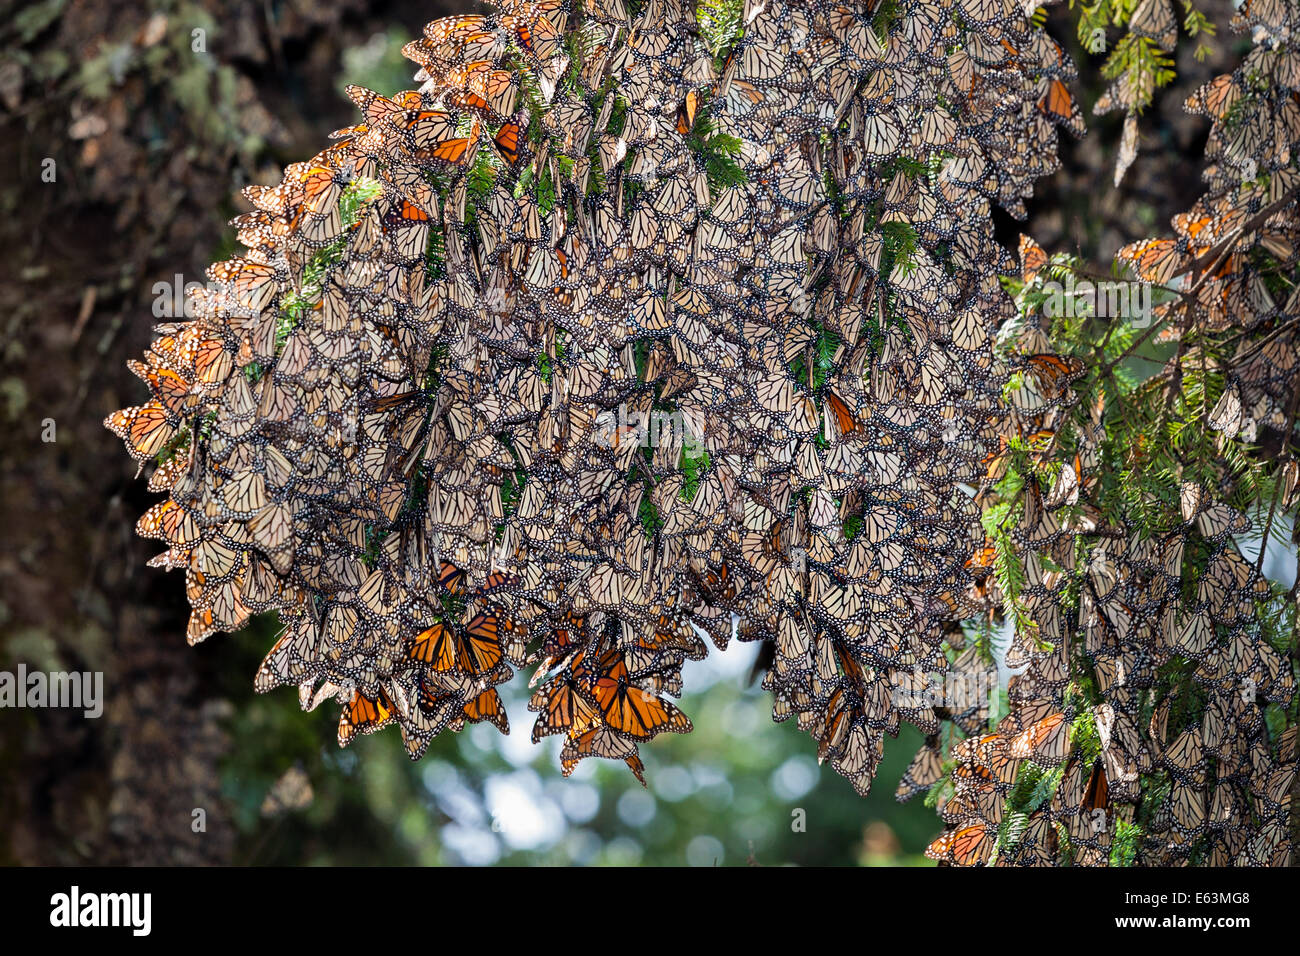 Hundredes of monach butterflies cling to an oyamel fir tree in the Rosario Sanctuary, Michoacan, Mexico. - Stock Image